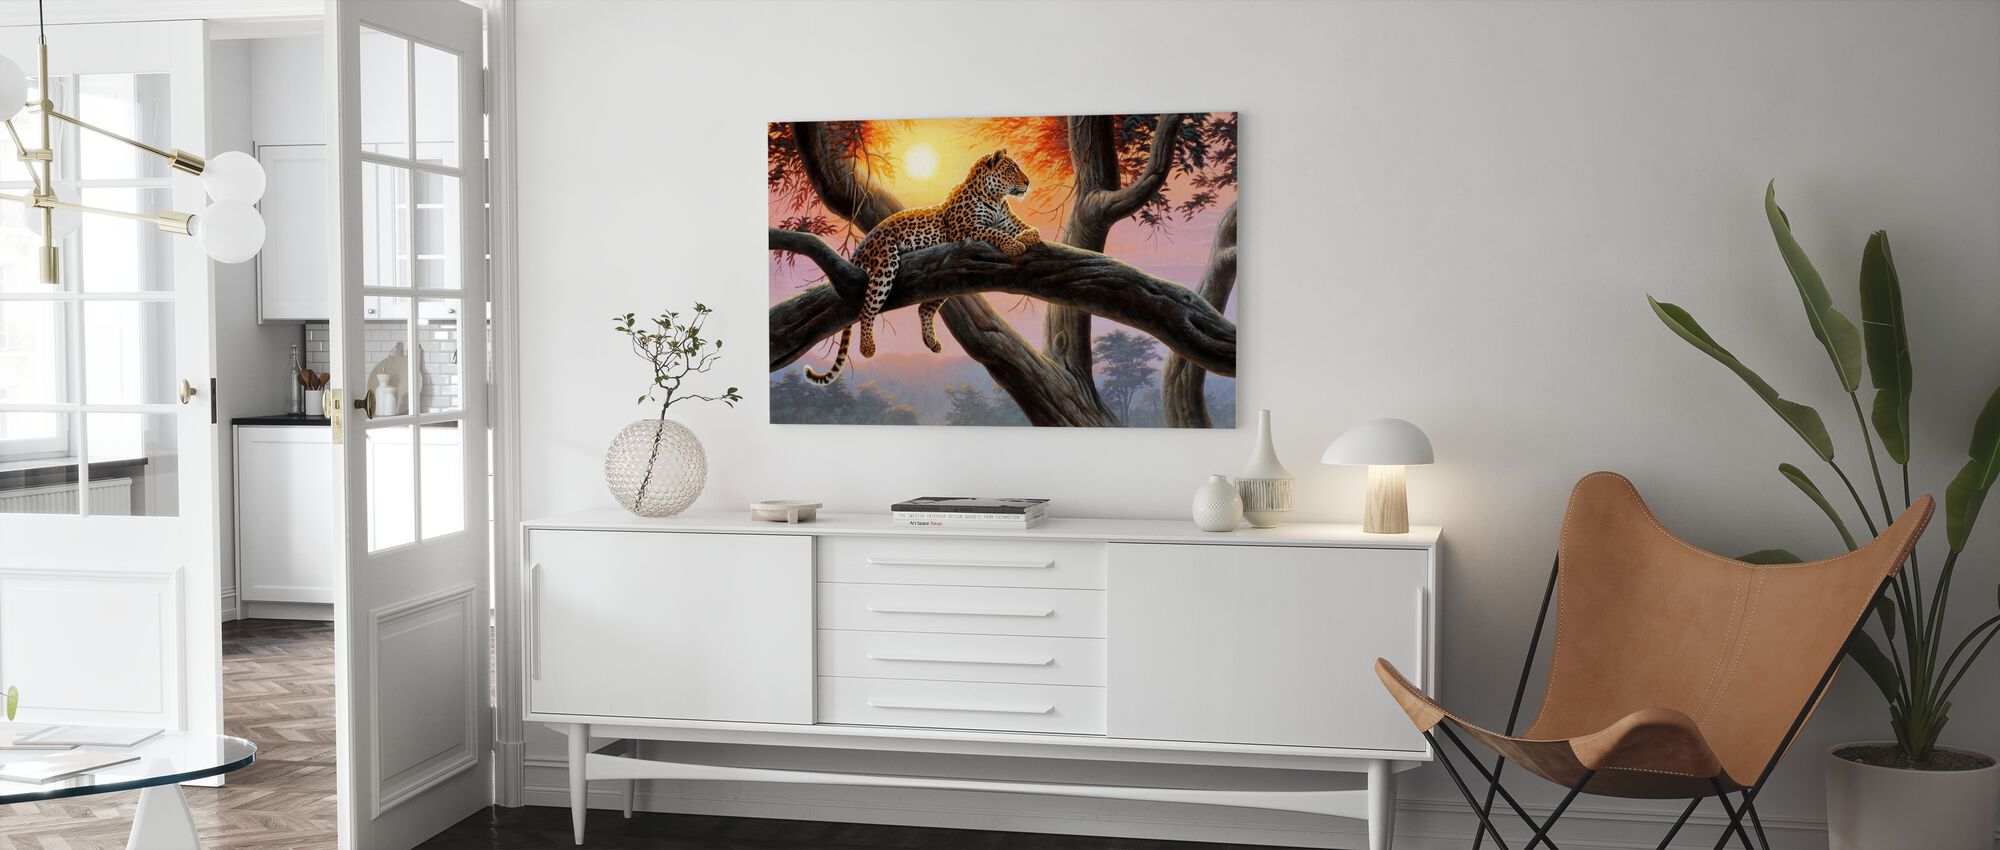 Evening Watch - Leopard - Canvas print - Living Room